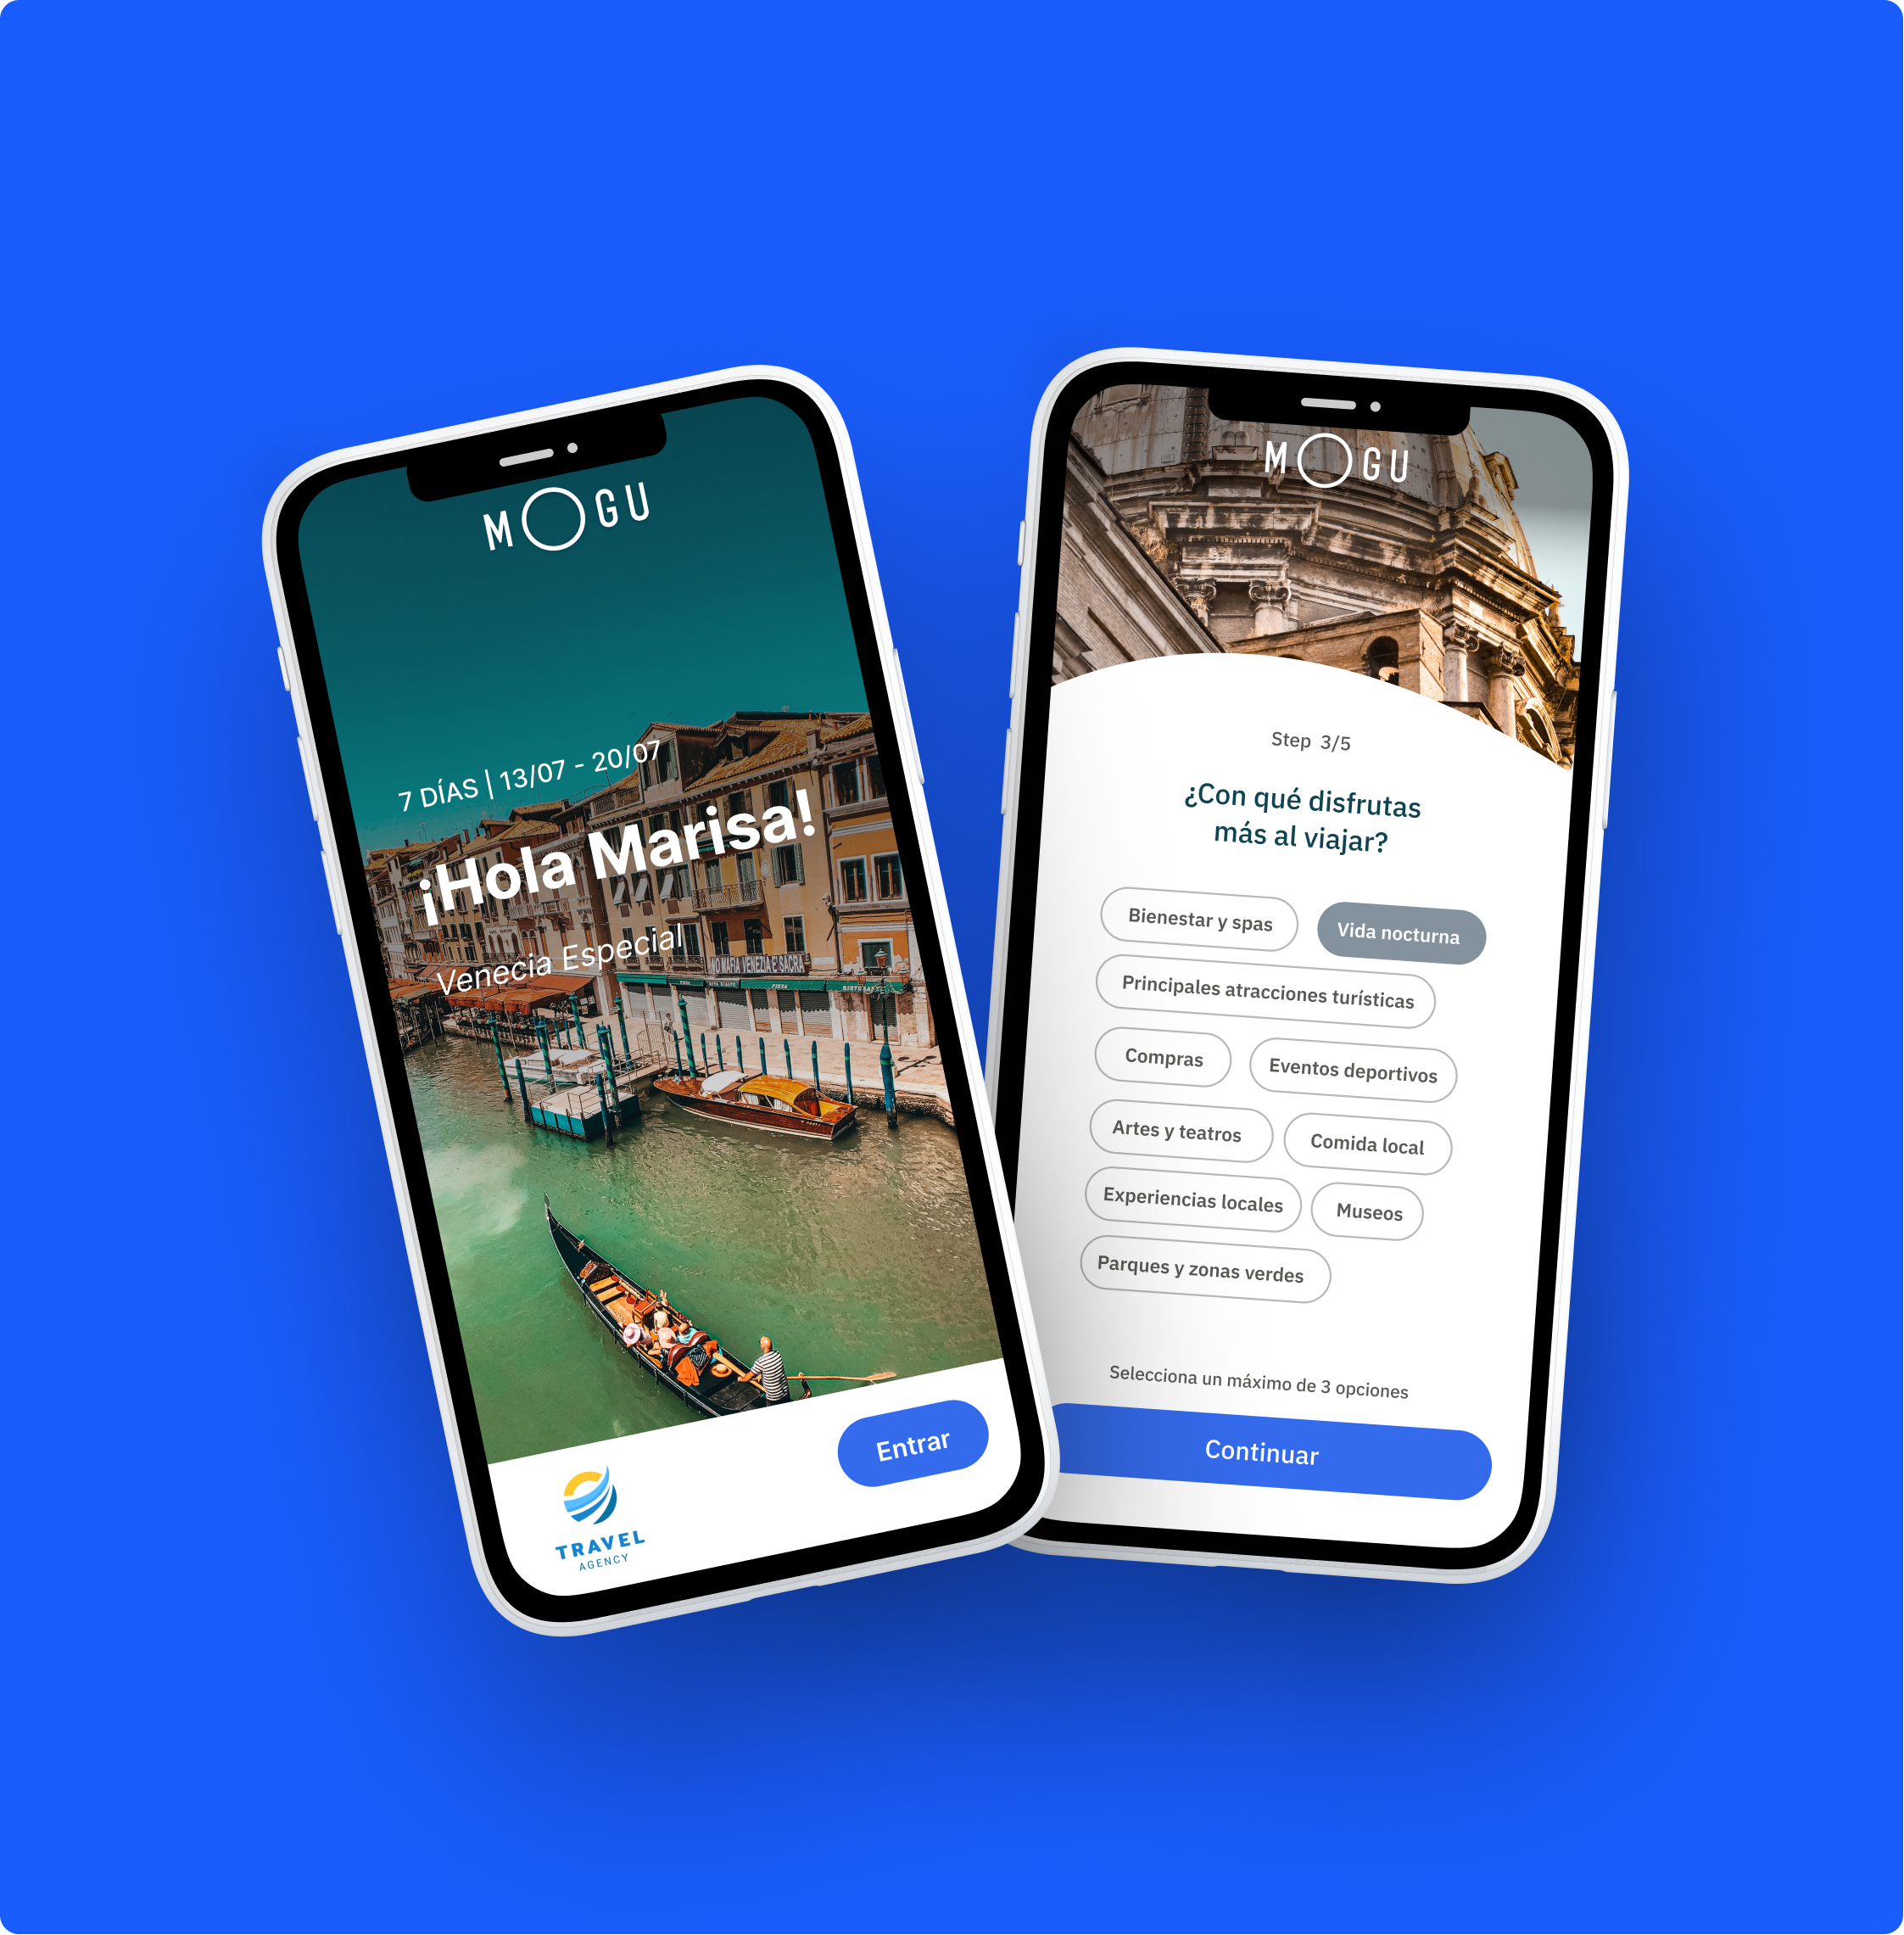 Two views of the application of MOGU, the introduction of the trip and the form regarding traveler interests